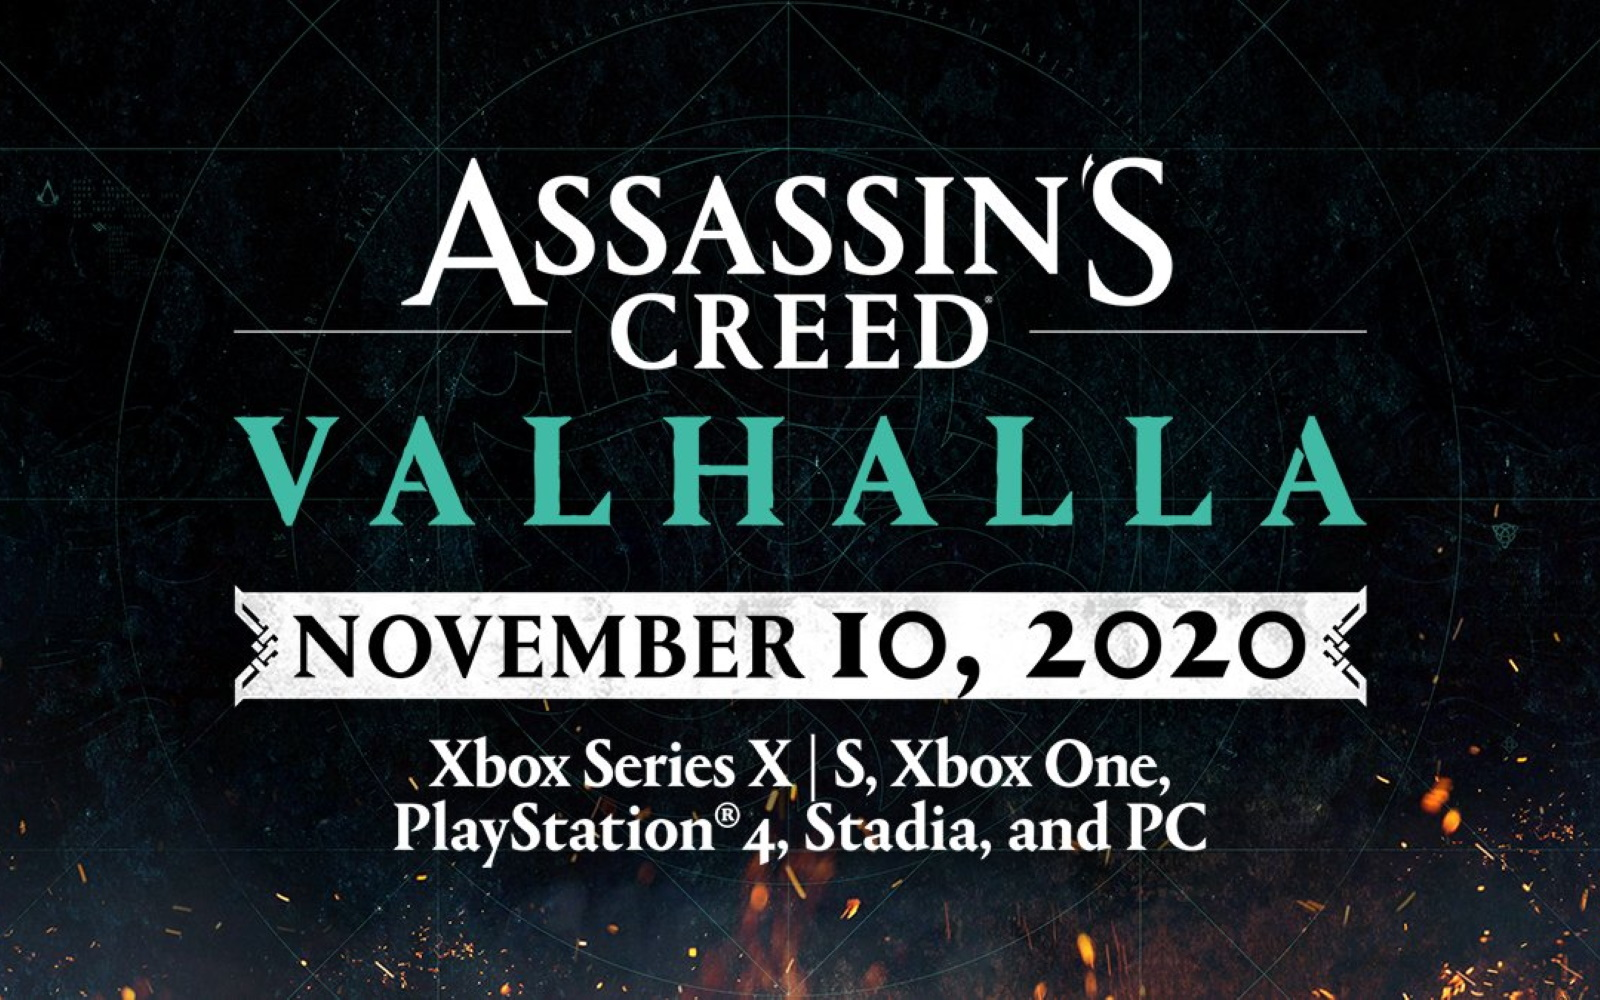 Ubisoft Will Release Assassin's Creed Valhalla & Watch Dogs: Legion For Xbox Series X & Series S On November 10th